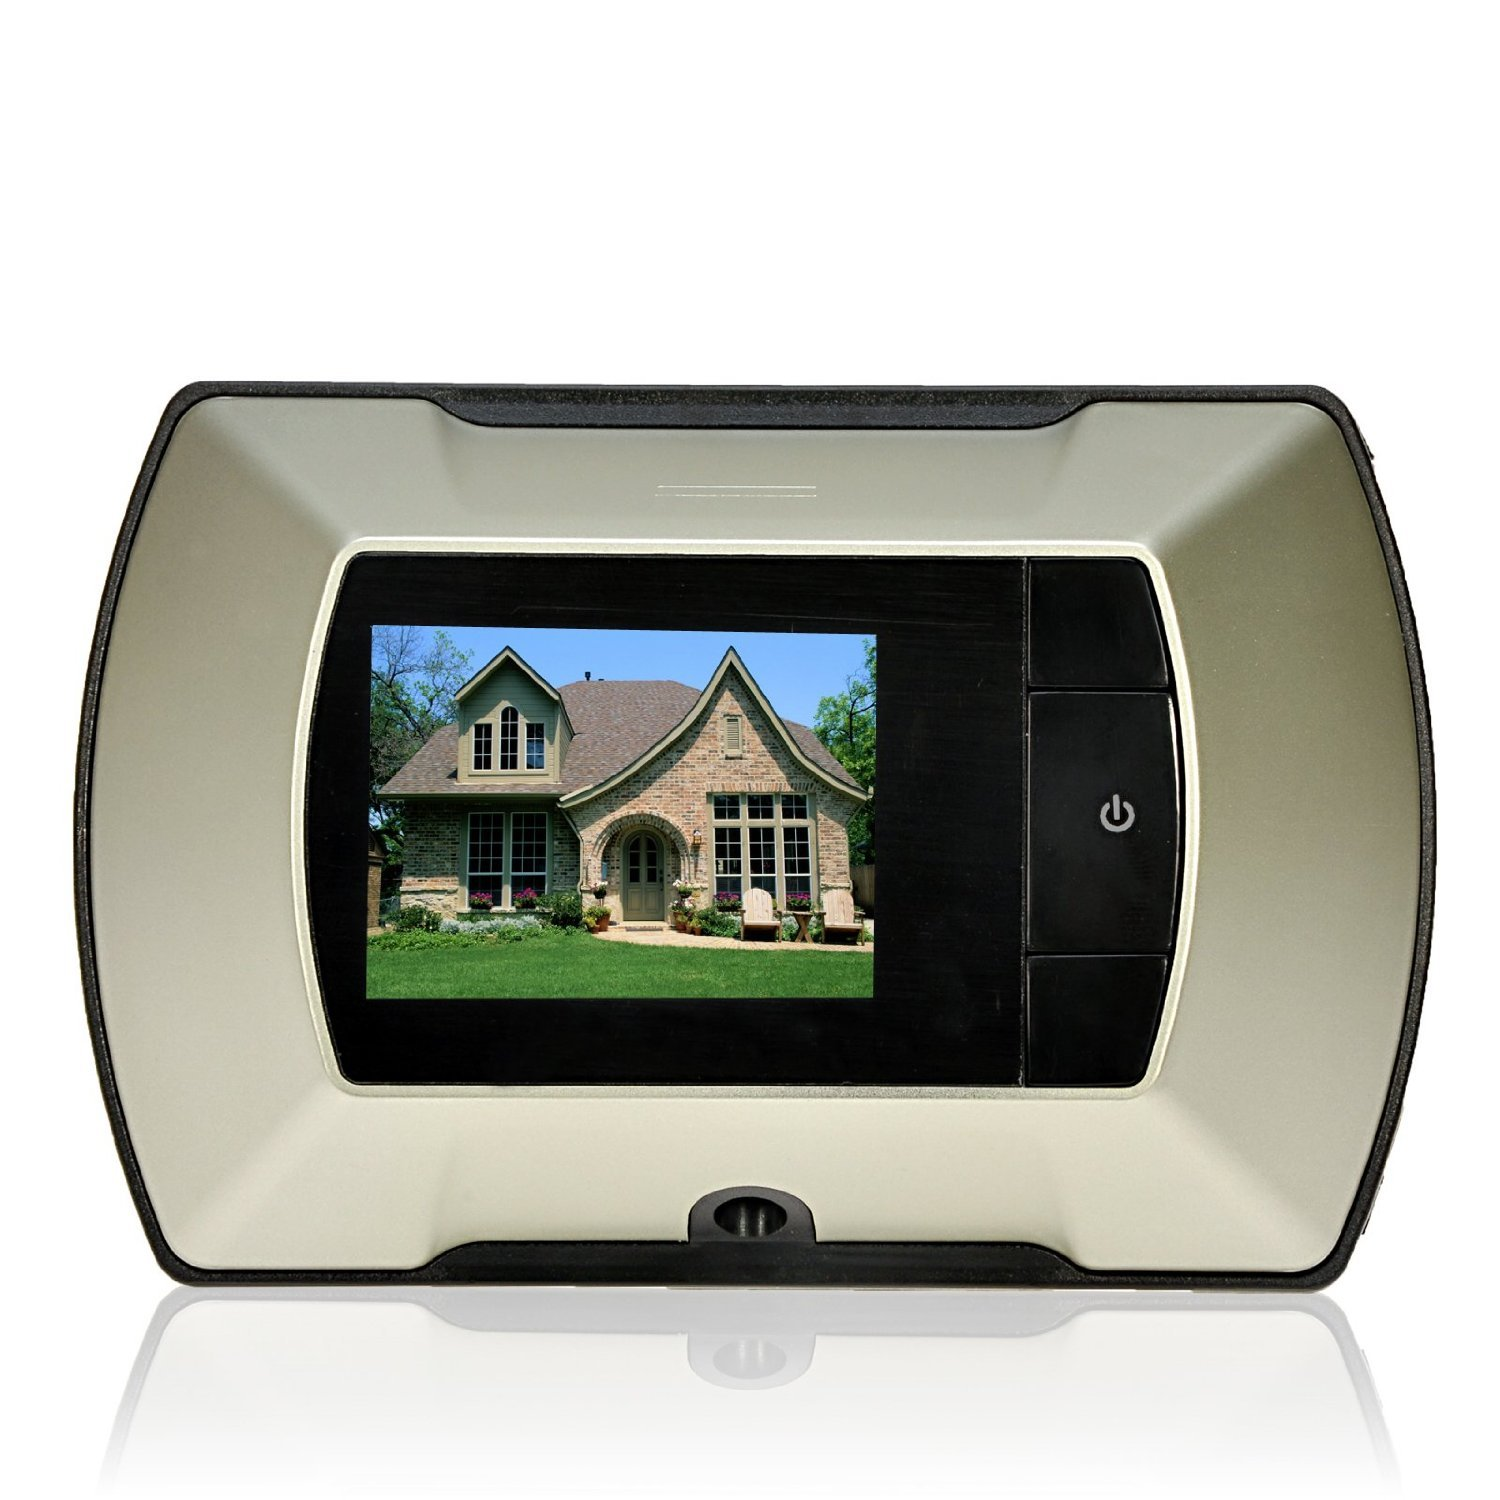 Tukzer Digital Door Viewer with 2.2'' LCD Screen Monitor, Battery-operated and Non-remote Video Peephole Viewer